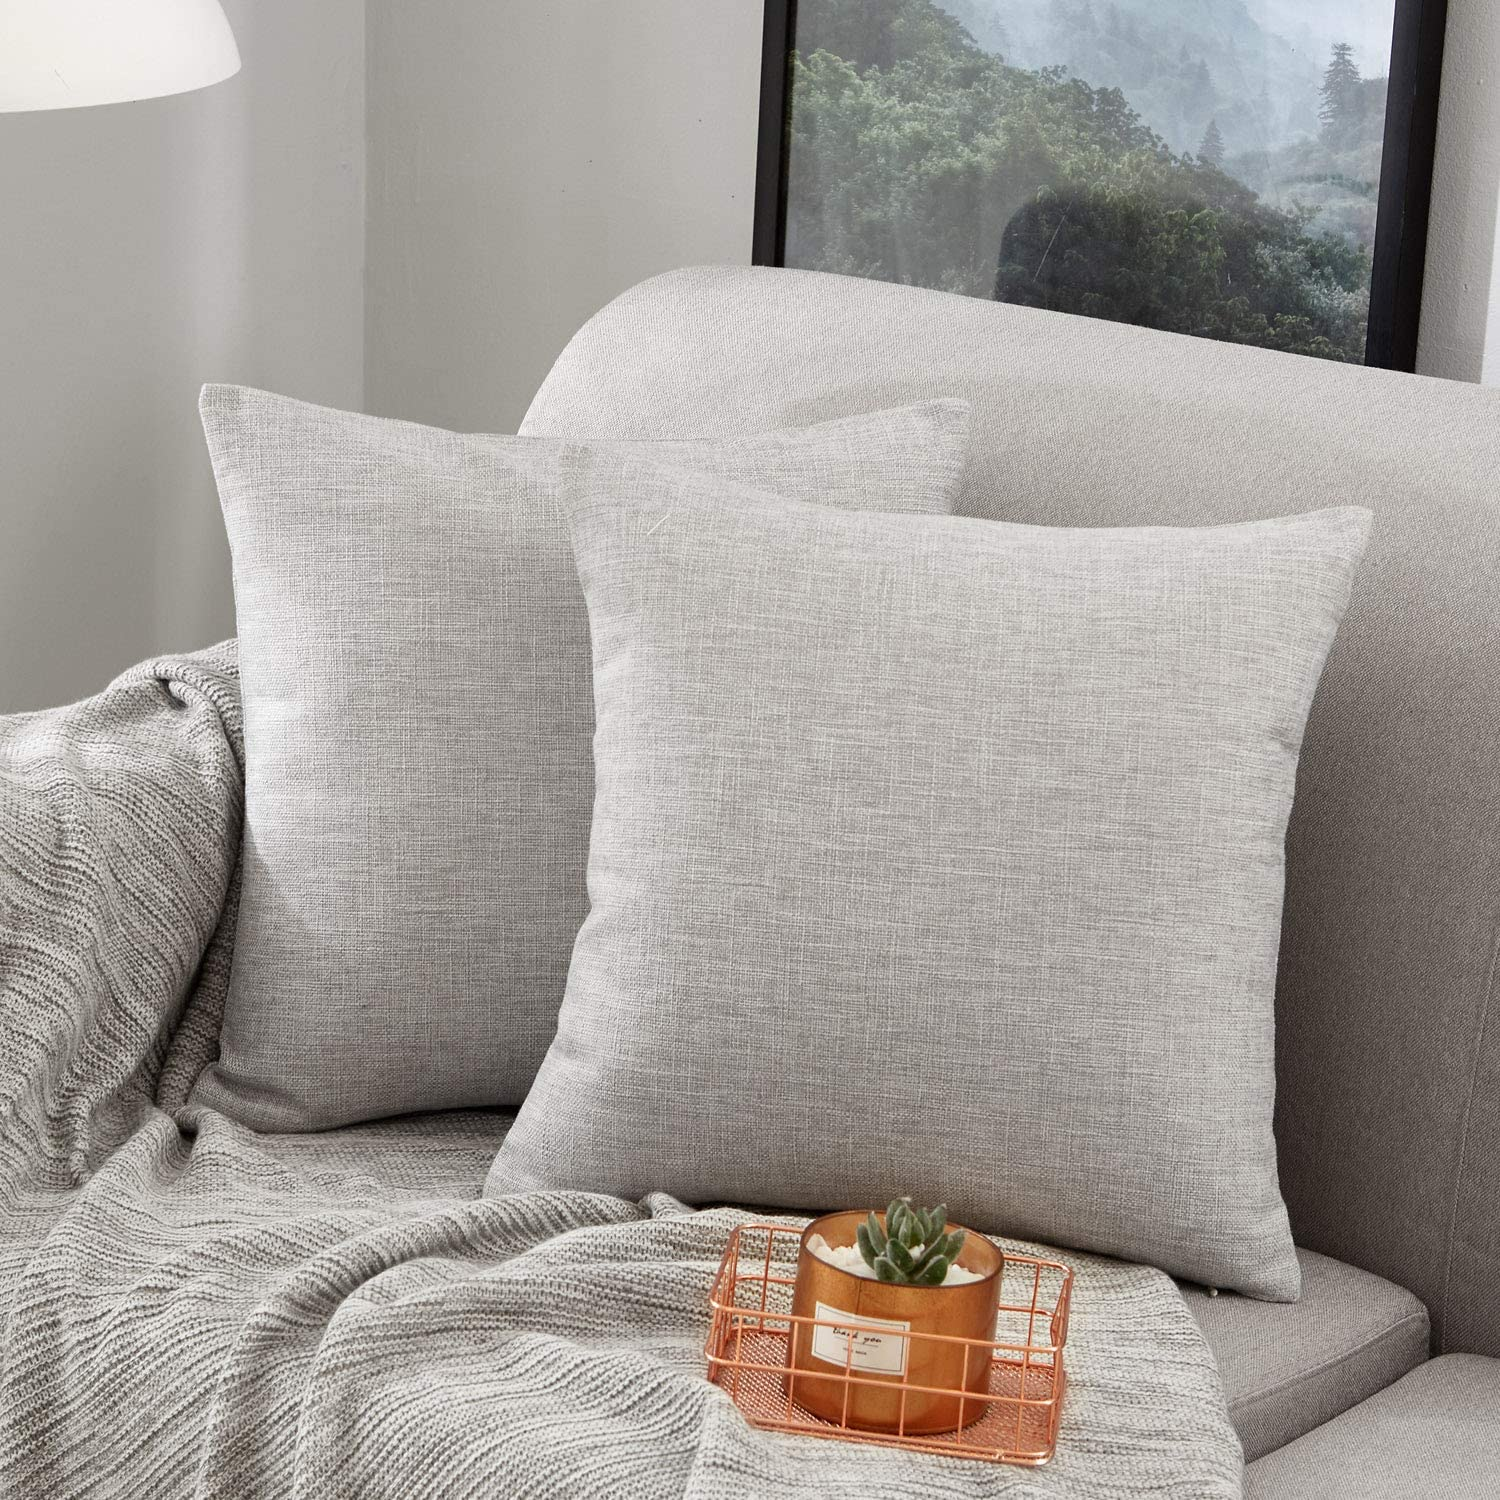 MERNETTE Pack of 2, Cotton Linen Blend Decorative Square Throw Pillow Cover Cushion Covers Pillowcase, Home Decor Decorations for Sofa Couch Bed Chair 18x18 Inch/45x45 cm (Light Grey)